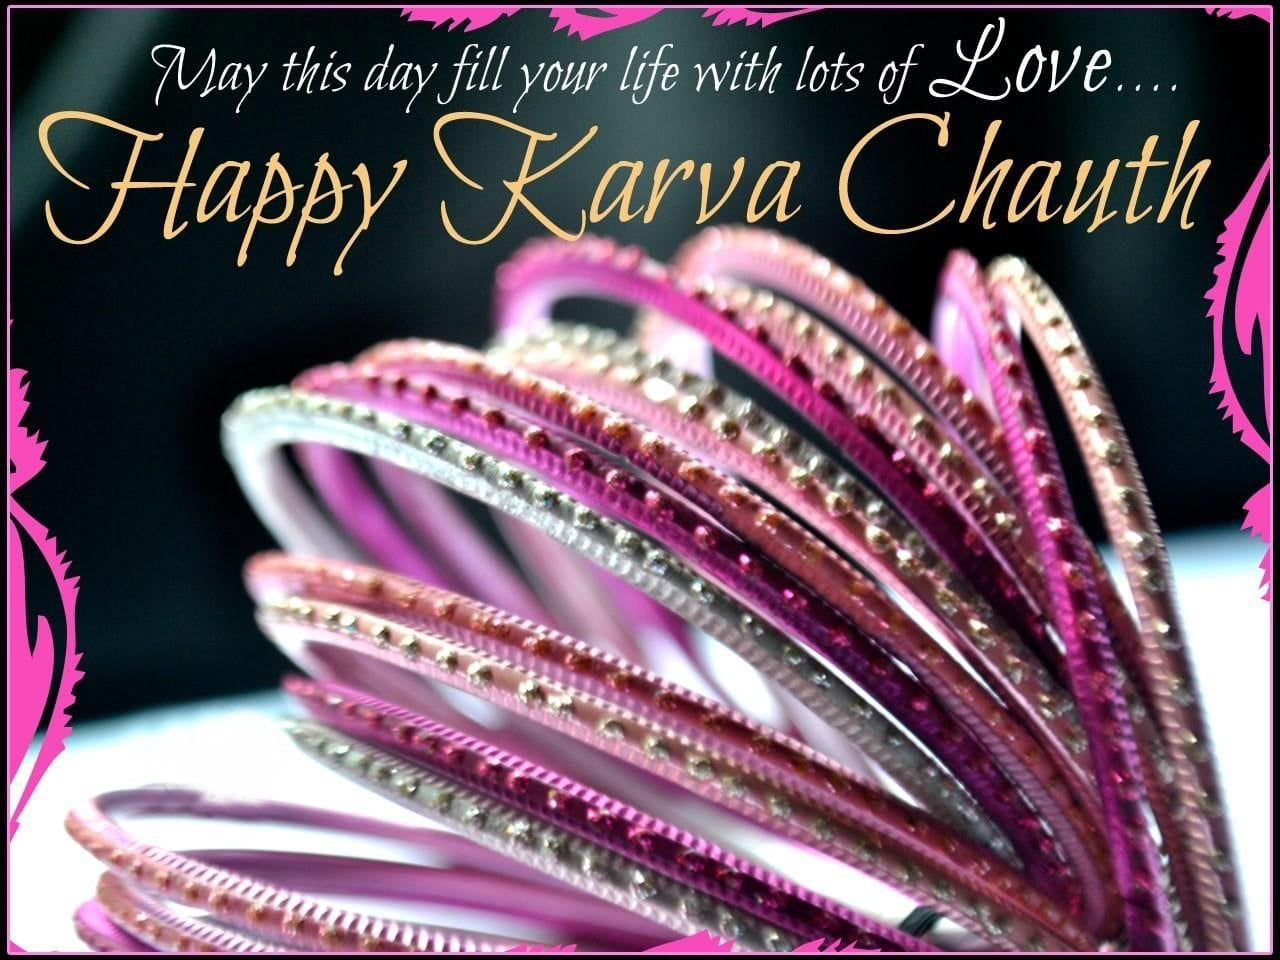 May-this-karwa-chauth-fill-your-life-with-lots-of-love